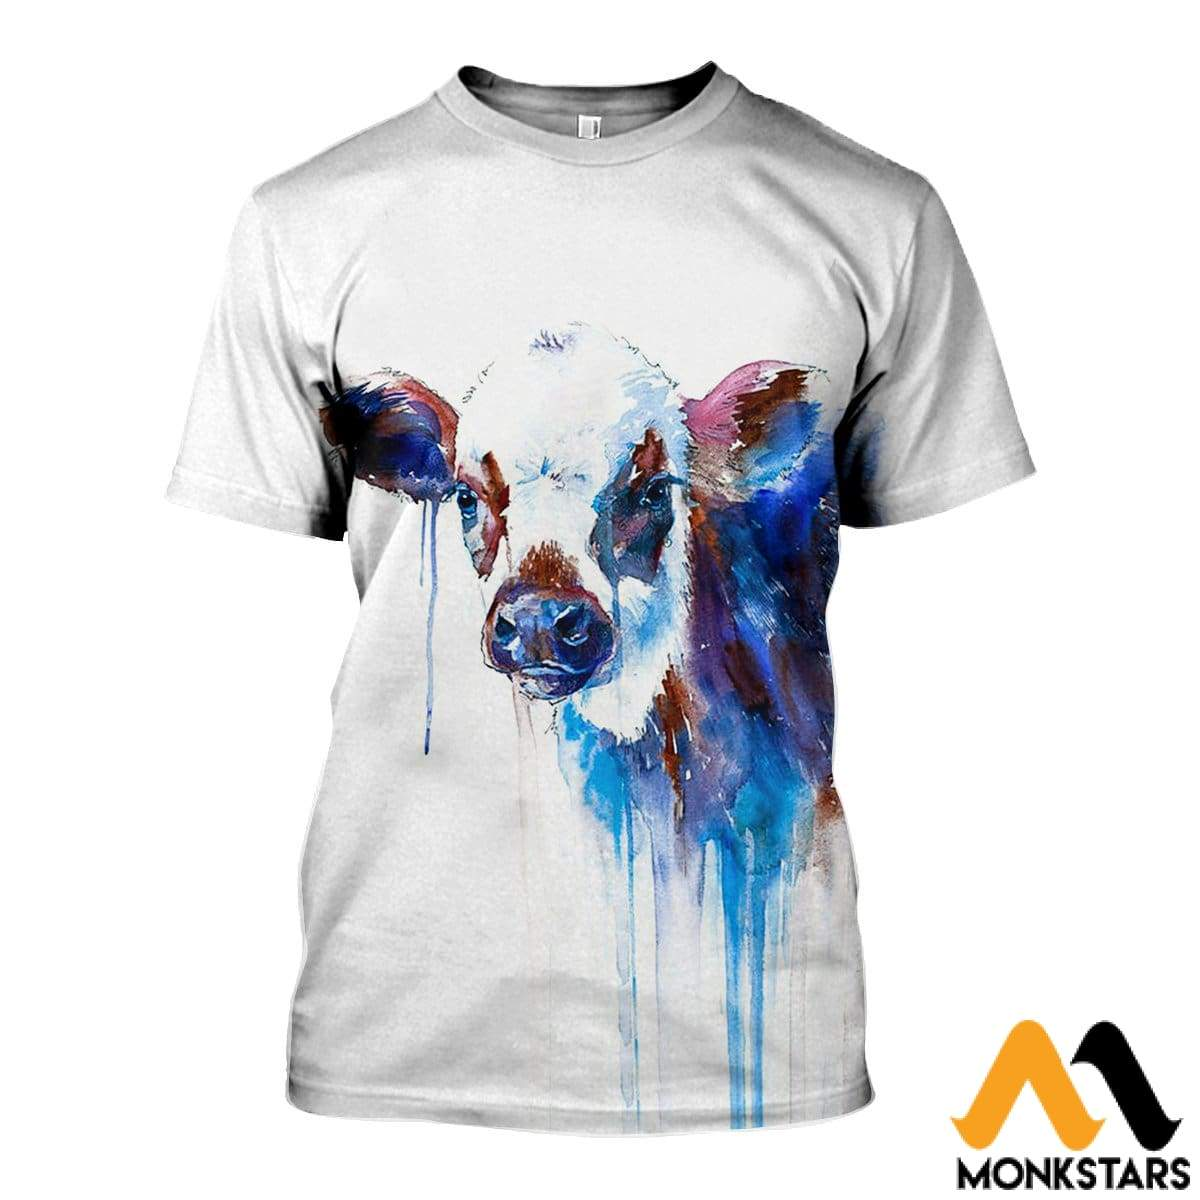 Over And 3d Shirts Printed Cow Monkstars Inc All Shorts f6yYbgv7I